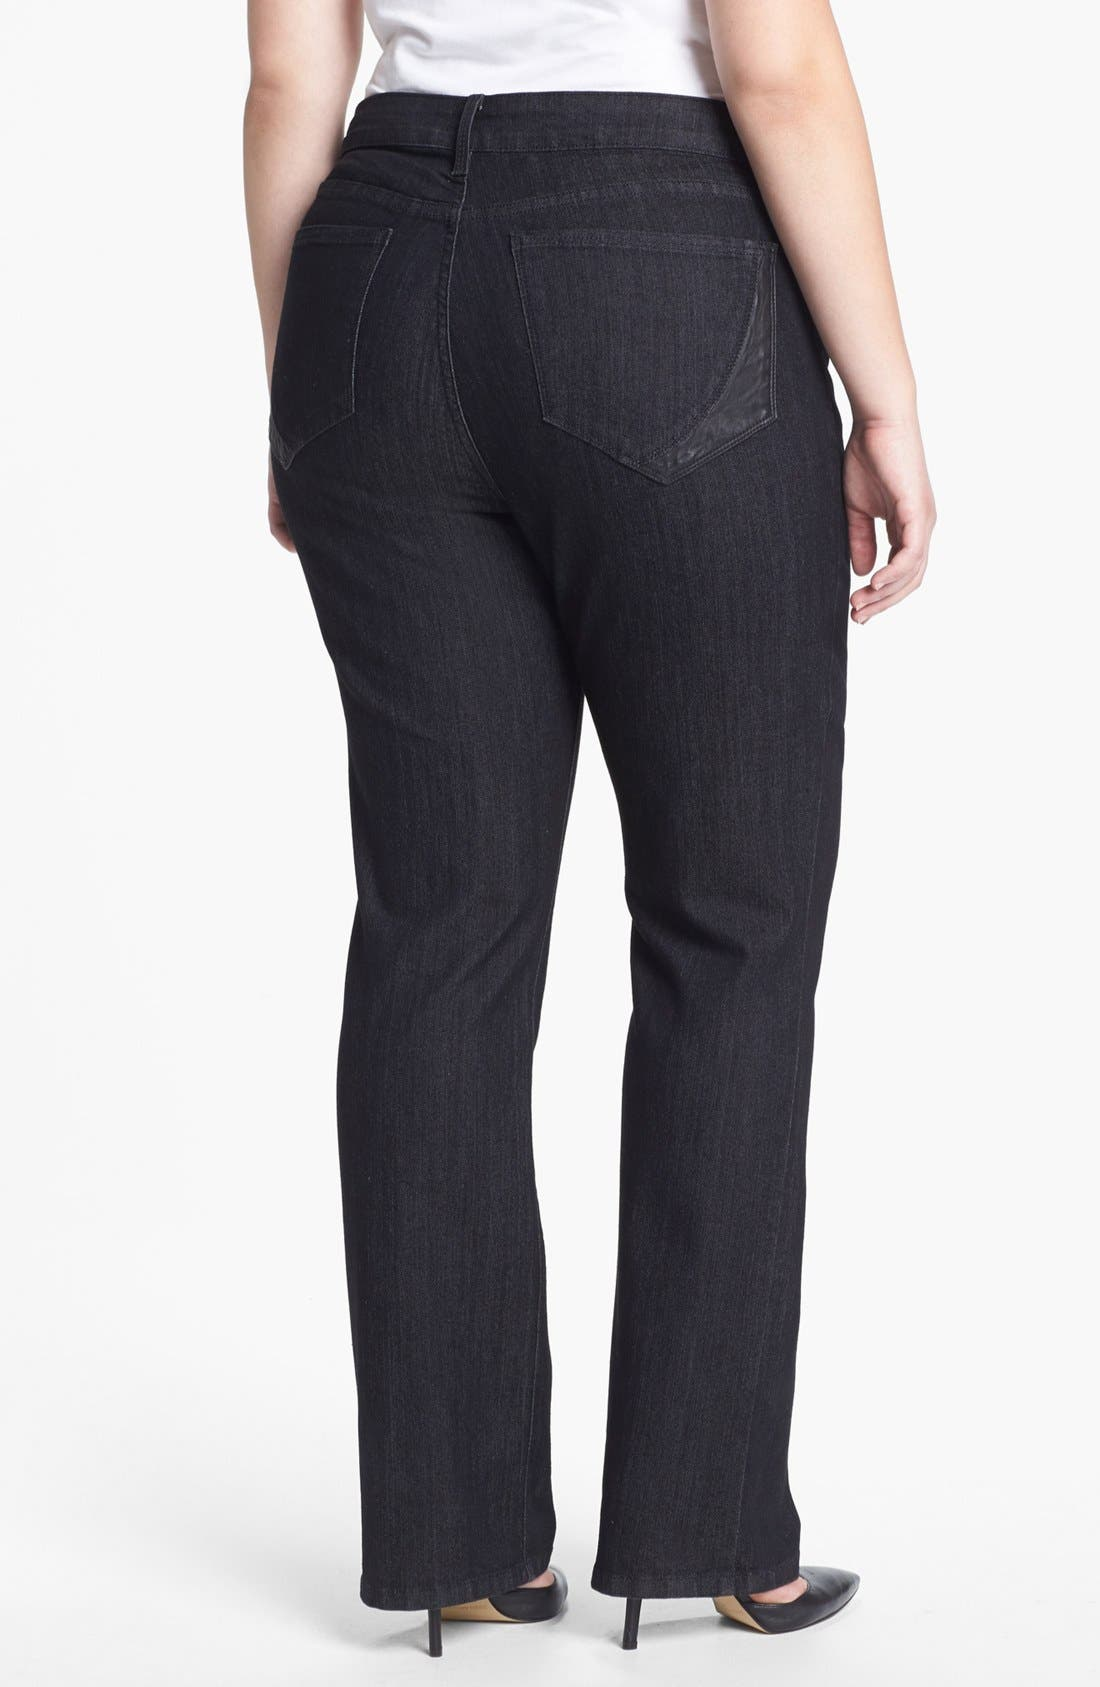 Main Image - NYDJ 'Marilyn' Faux Leather Detail Straight Leg Jeans (Plus Size)